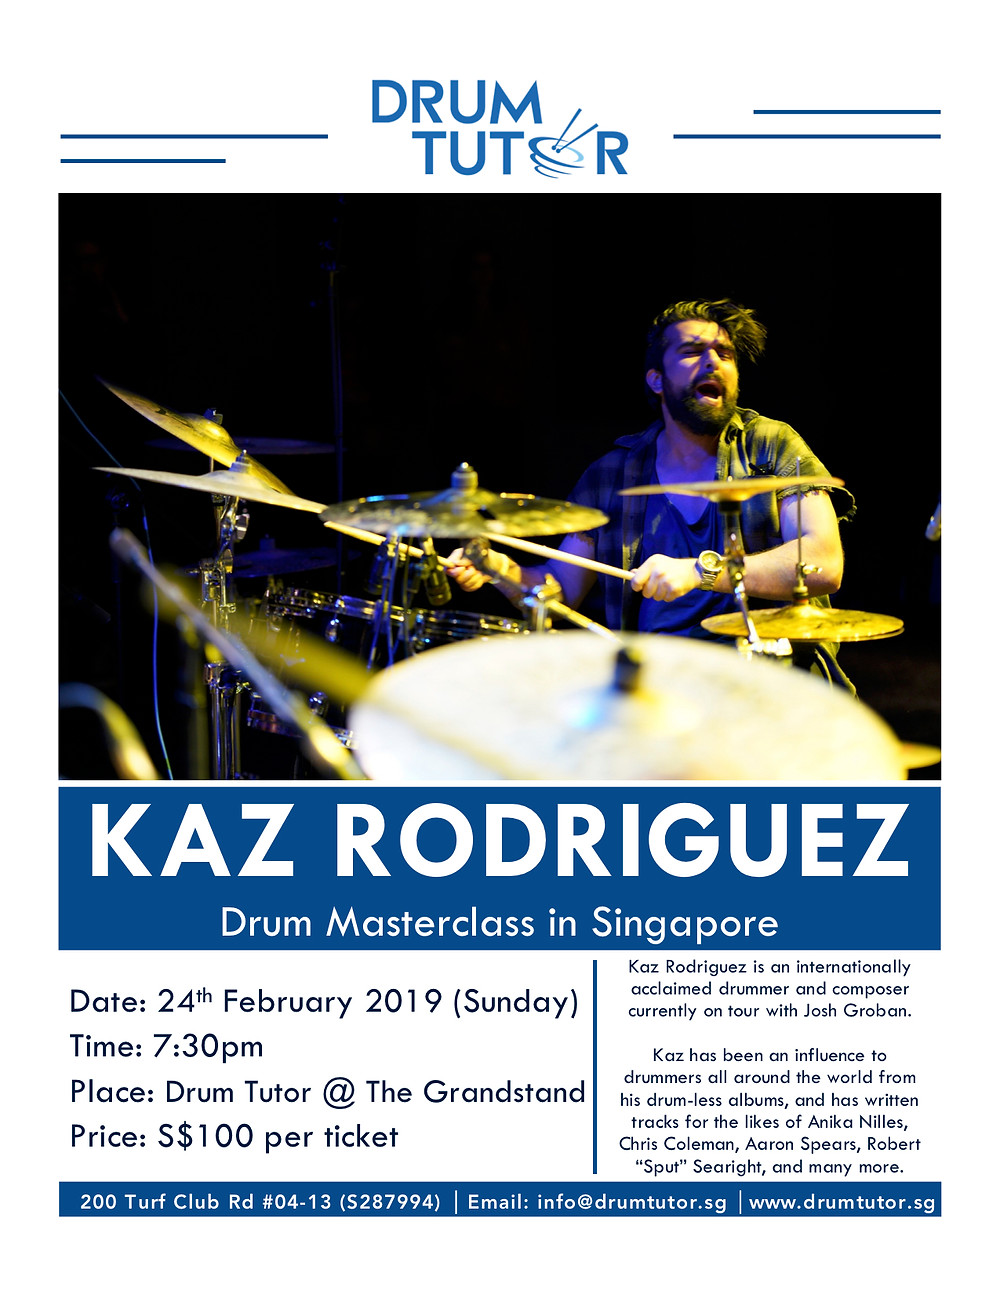 Kaz Rodriguez at Drum Tutor